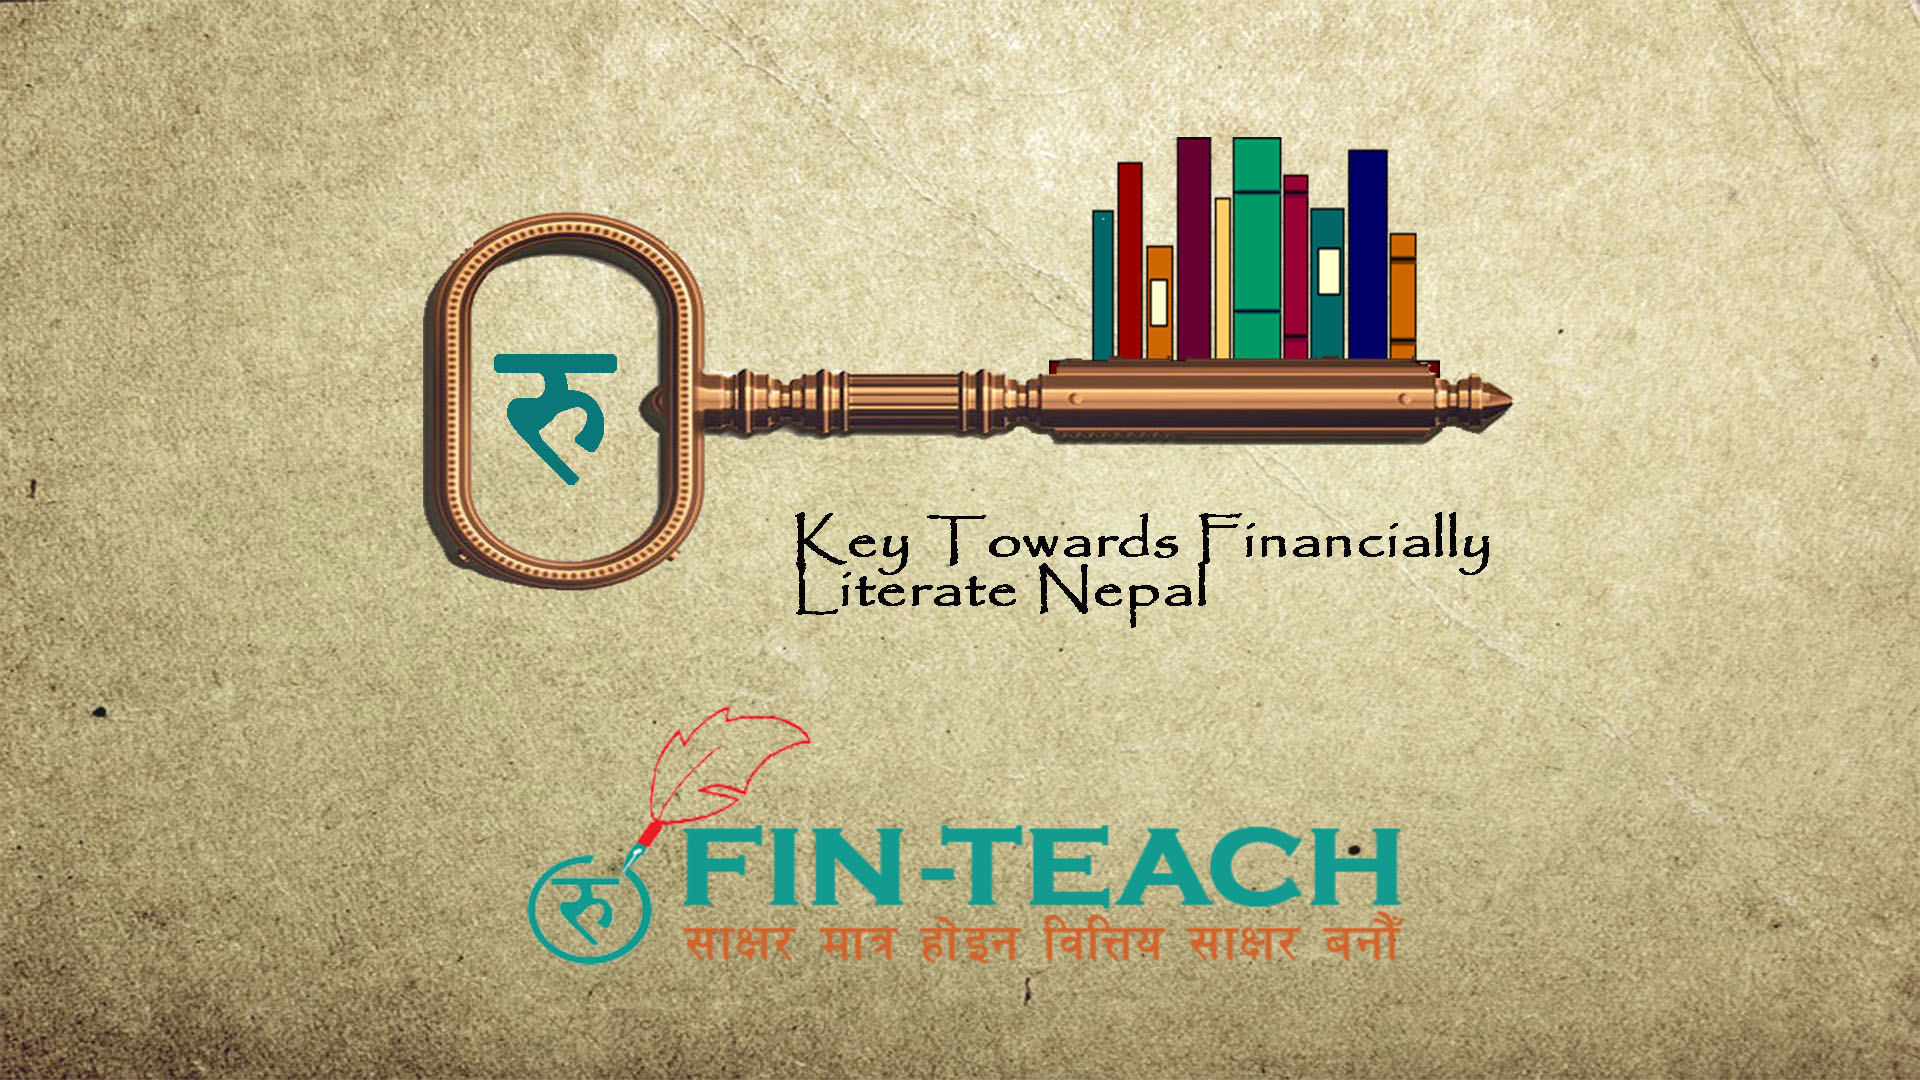 Fin-Teach, a program on Financial Literacy in Nepal Photo Courtesy: Entrepreneurs Nepal